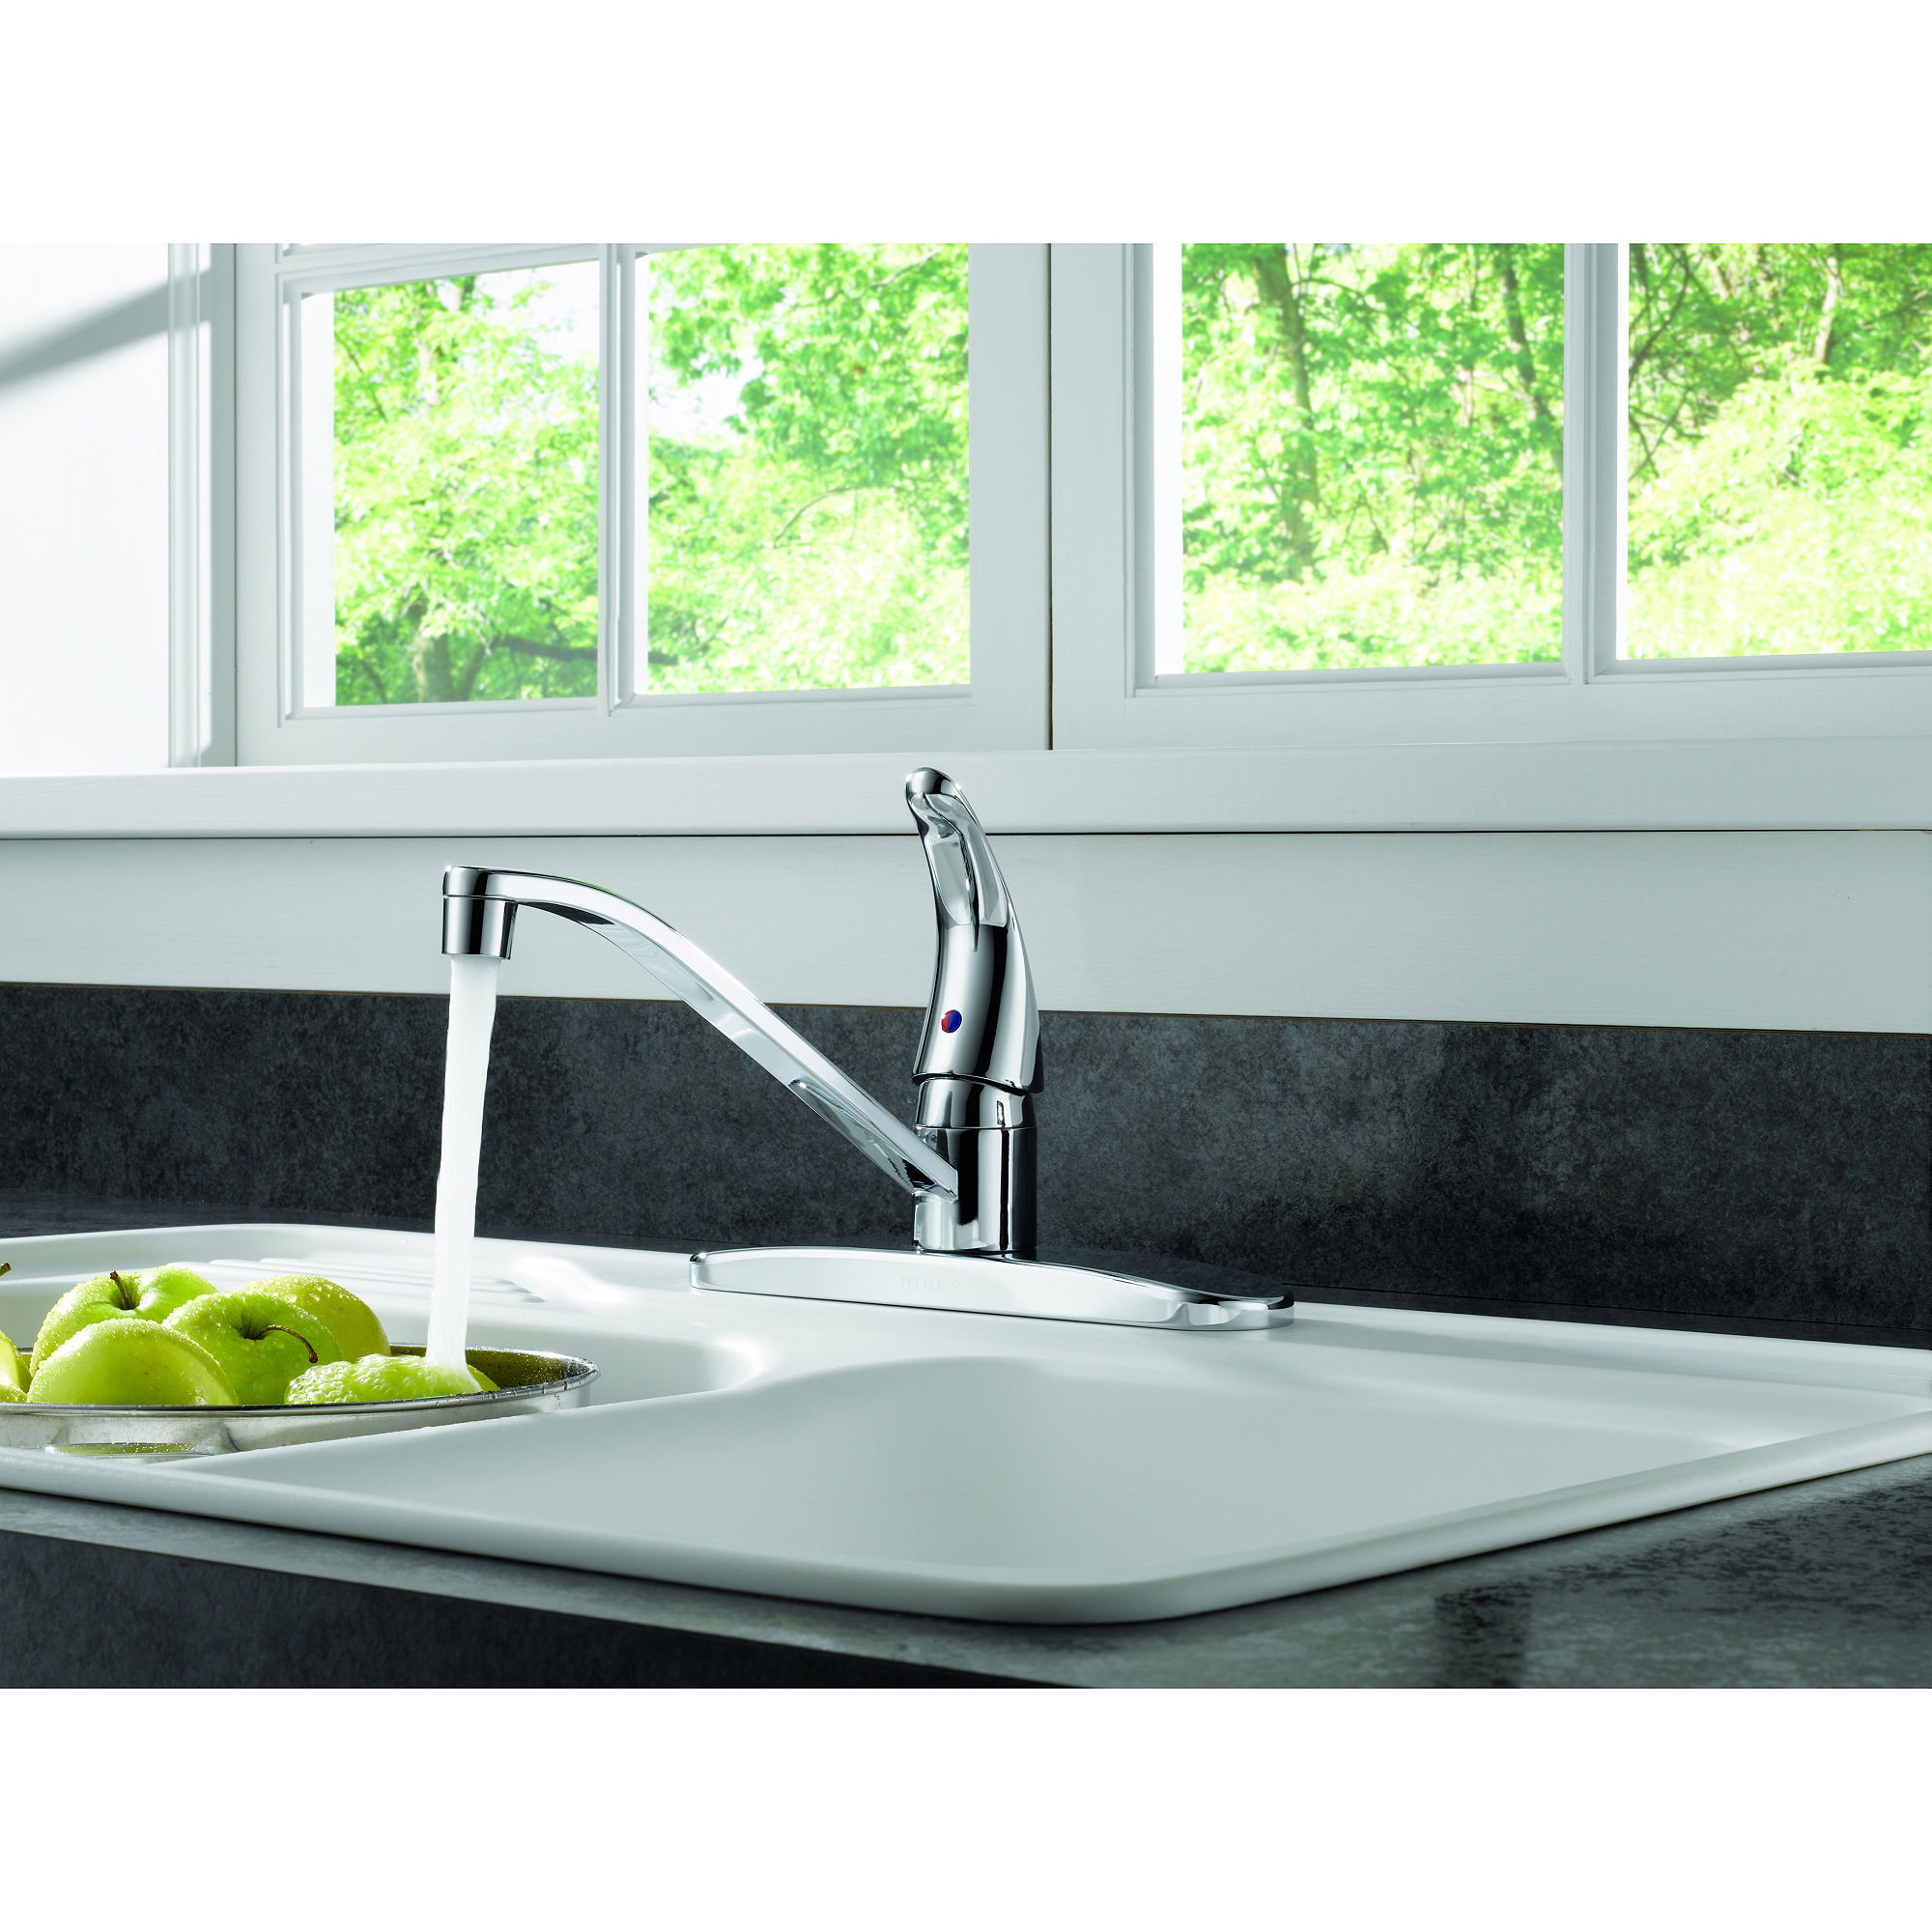 New Peerless Single Handle Kitchen Faucet with Single Lever Control ...